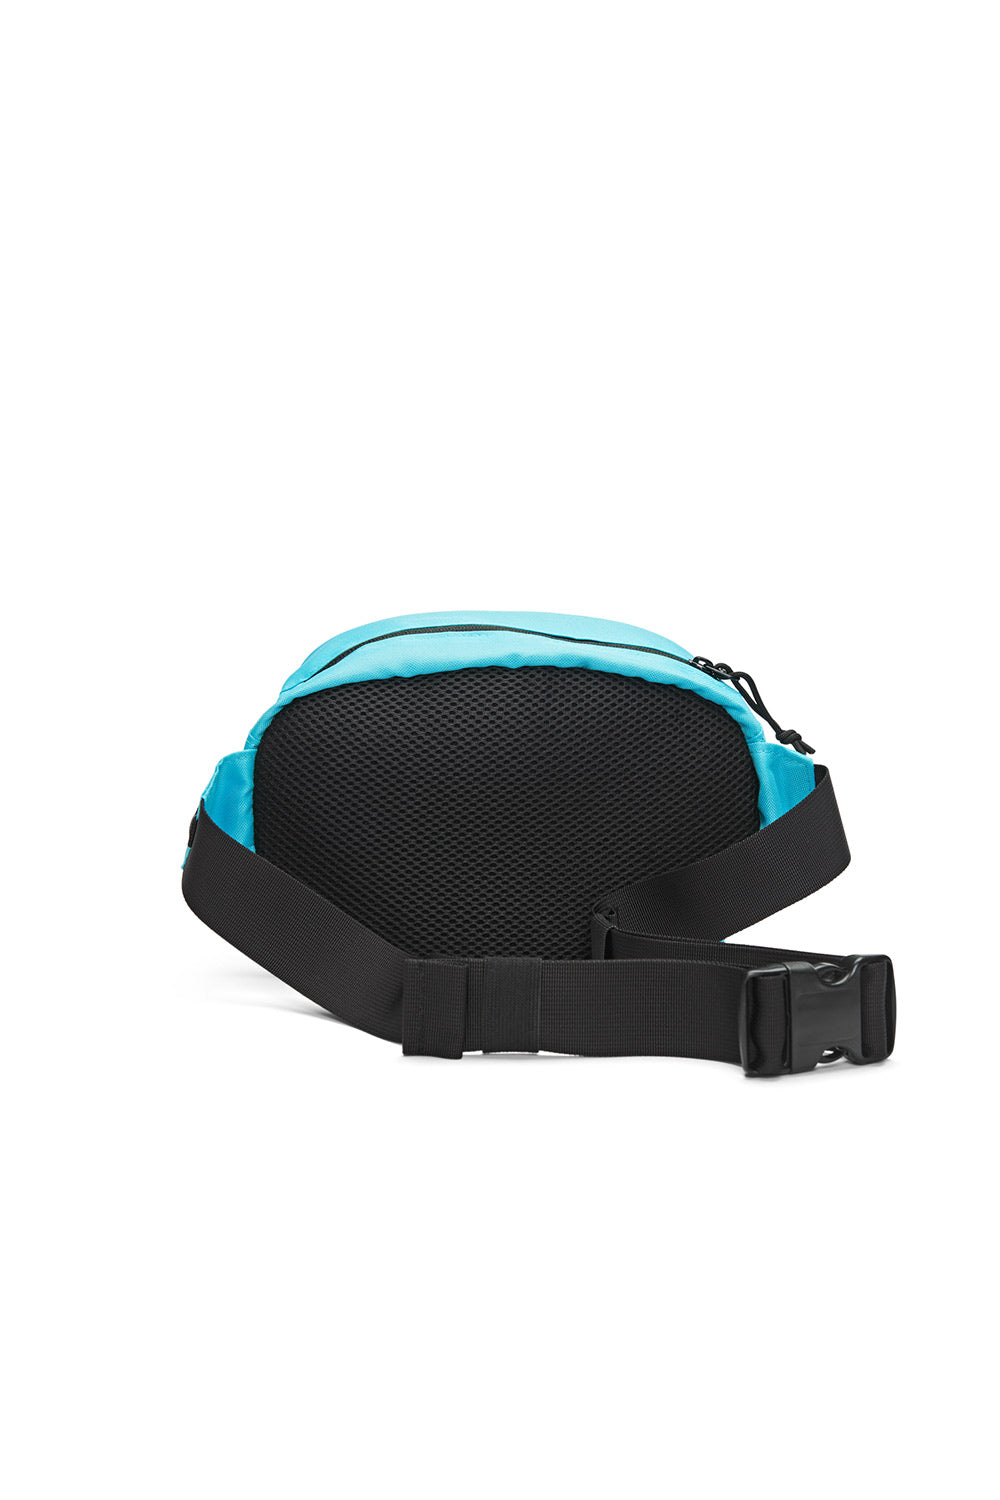 Polar Skate Co Cordura Hip Bag - Aqua